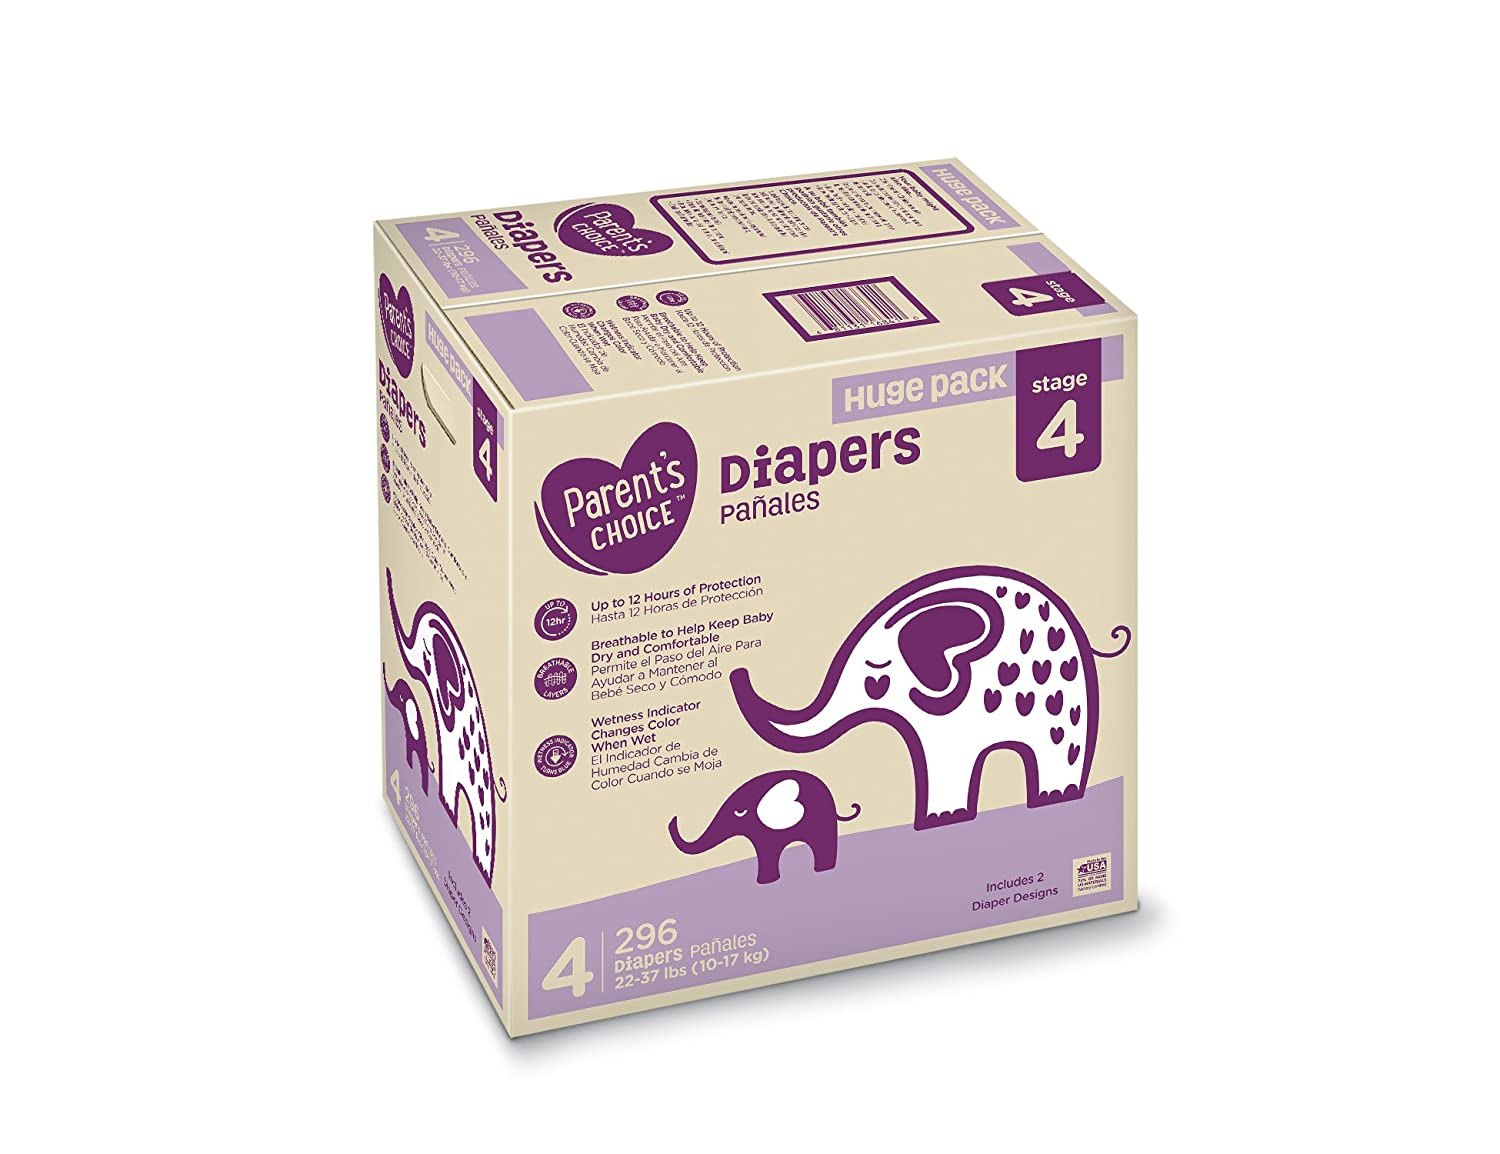 Amazon.com: Parents Choice Diapers, Size 4, 296 Diapers (Mega Box): Health & Personal Care